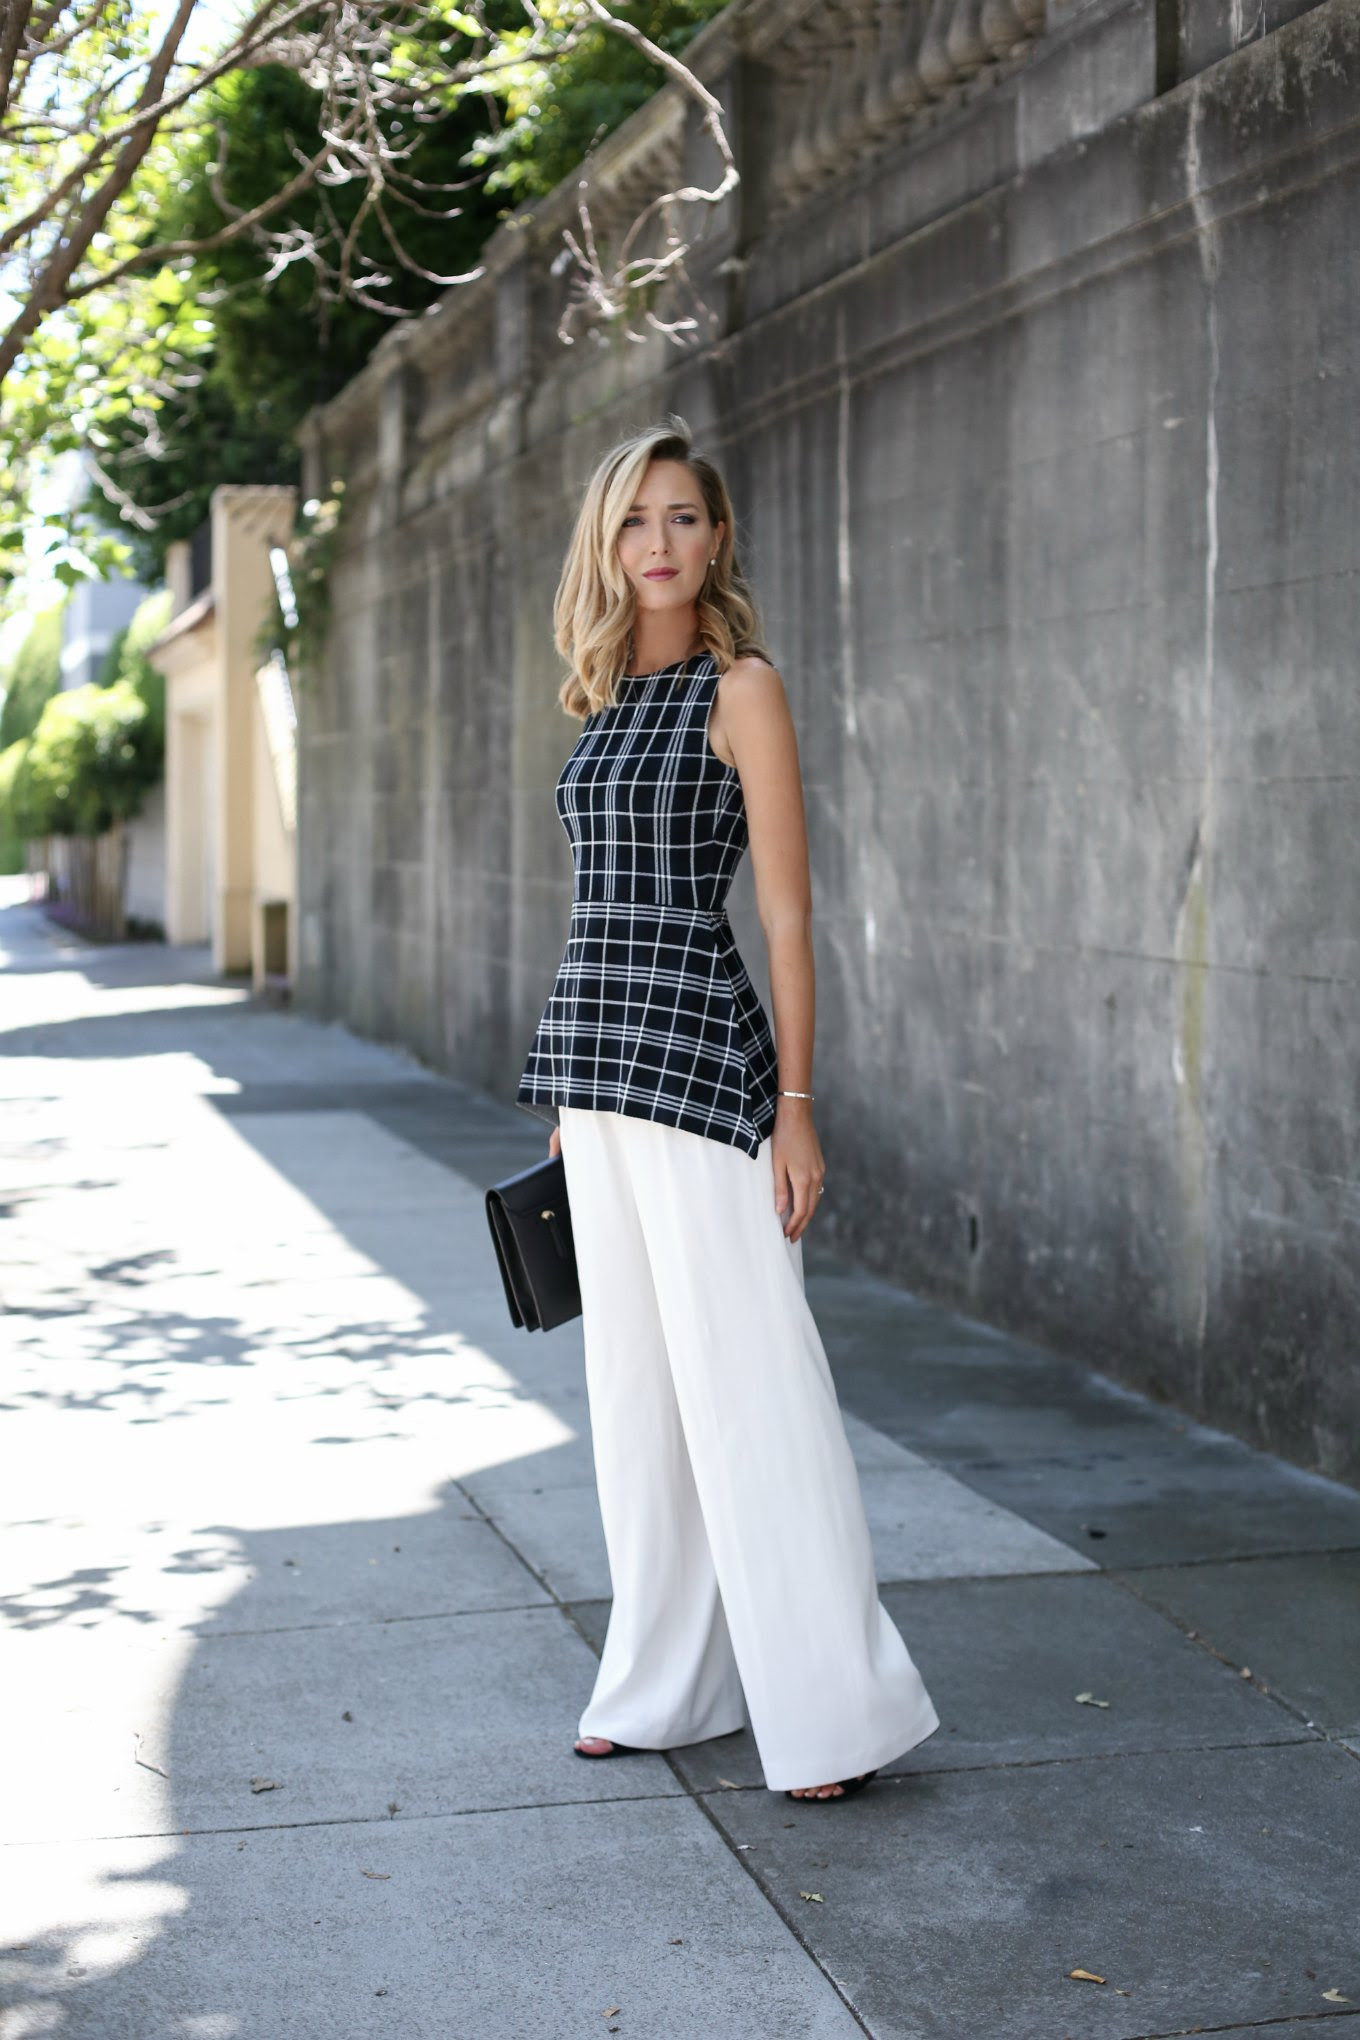 black-white-plaid-peplum-theory-knit-top-ivory-wide-leg-pants-block-heel-suede-sandals-steve-madden-work-wear-office-style-fashion-blog-san-francisco-sf-mary-orton3